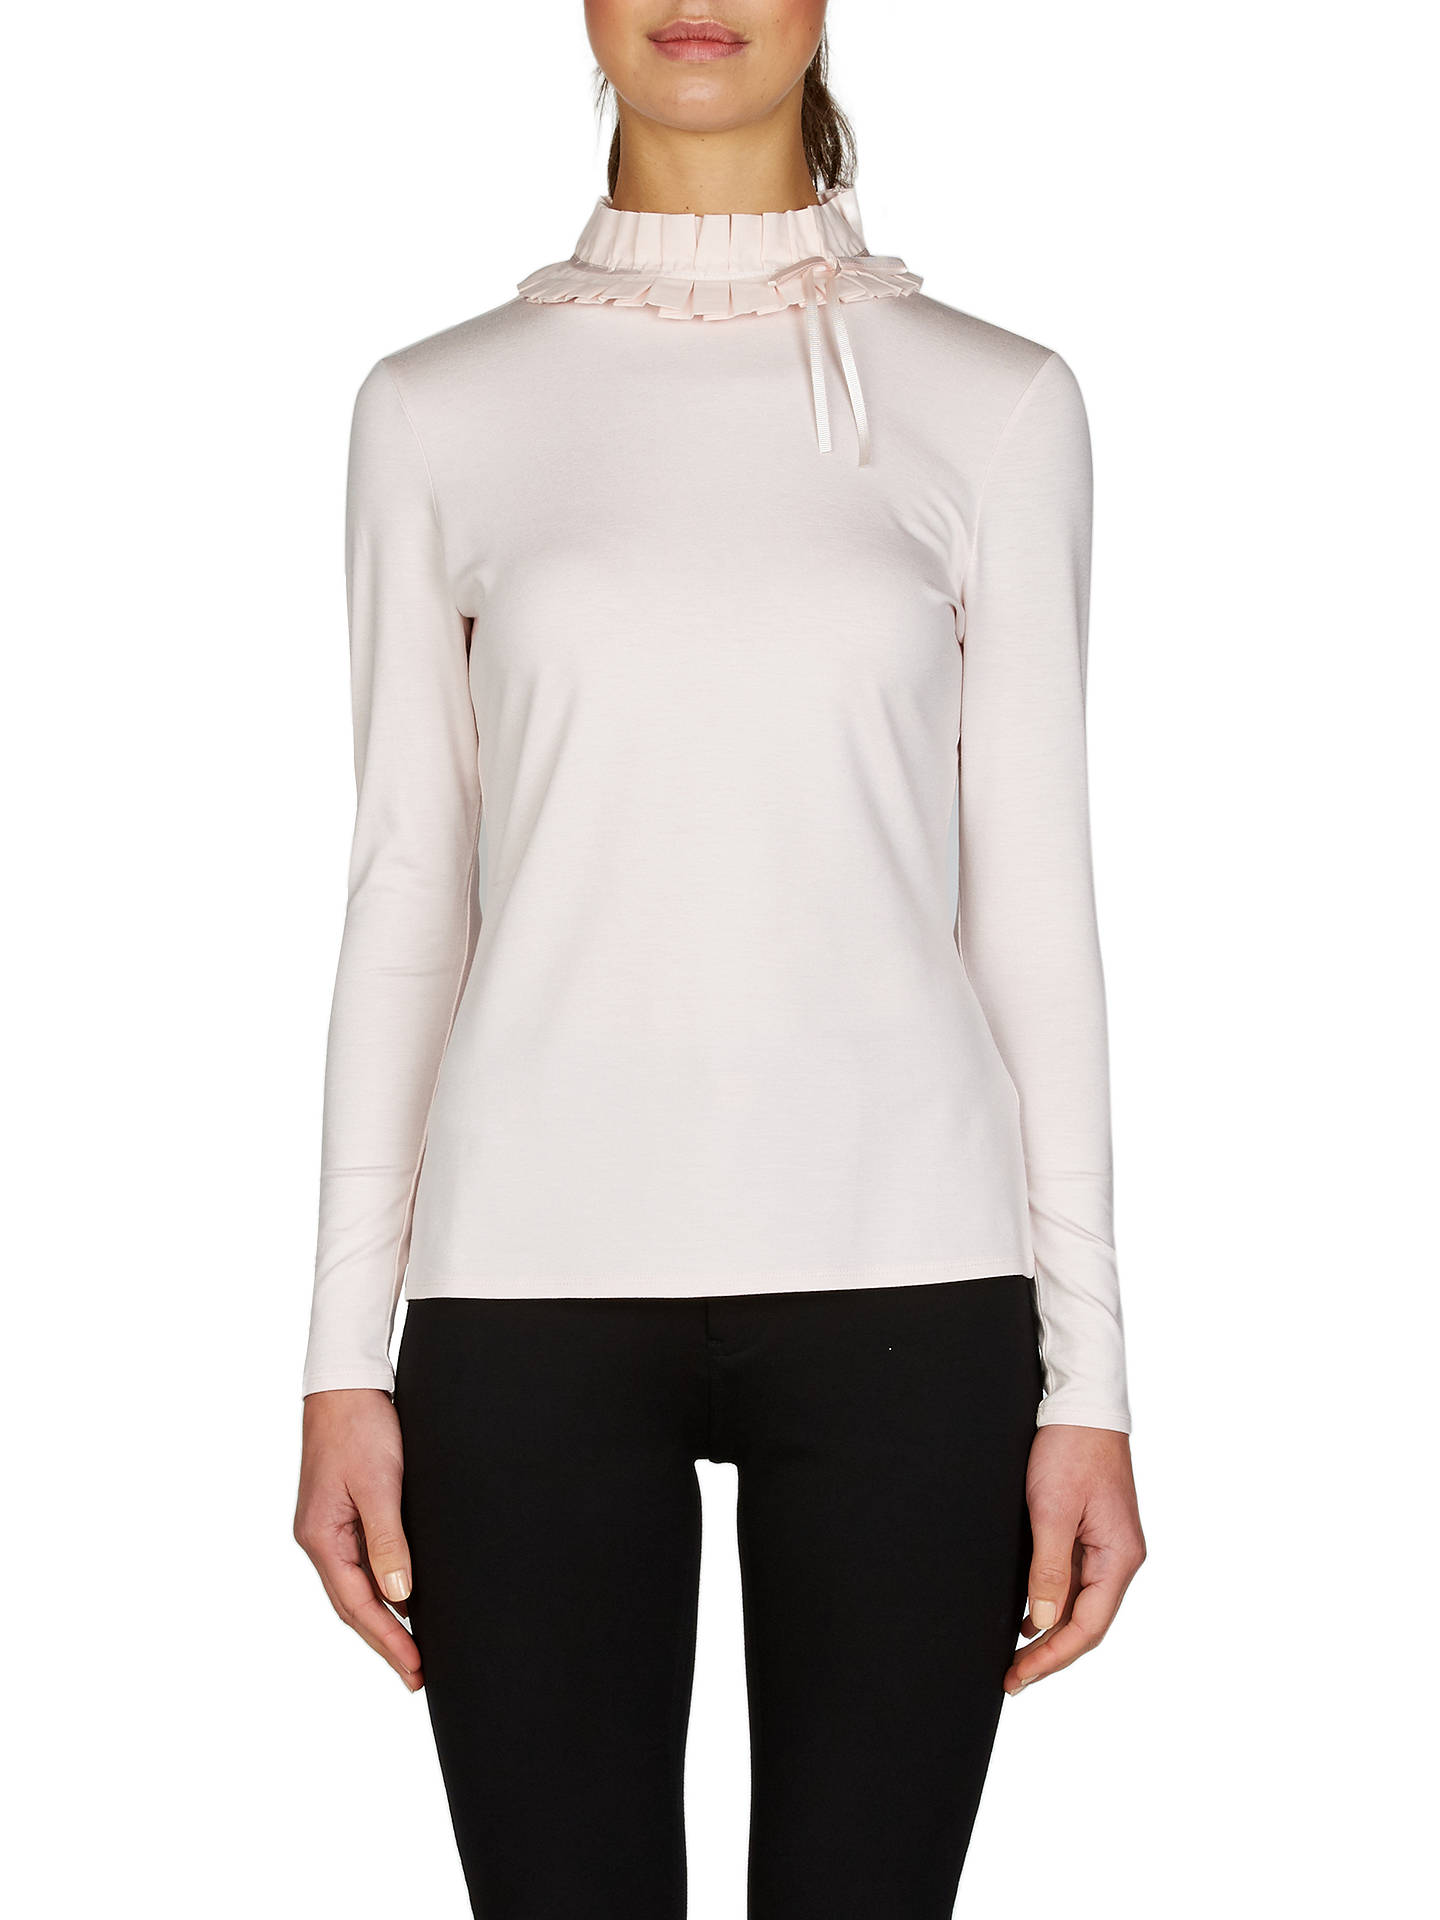 4f751faf4636 Ted Baker Ruffle Neck Fitted T-Shirt, Nude Pink at John Lewis & Partners